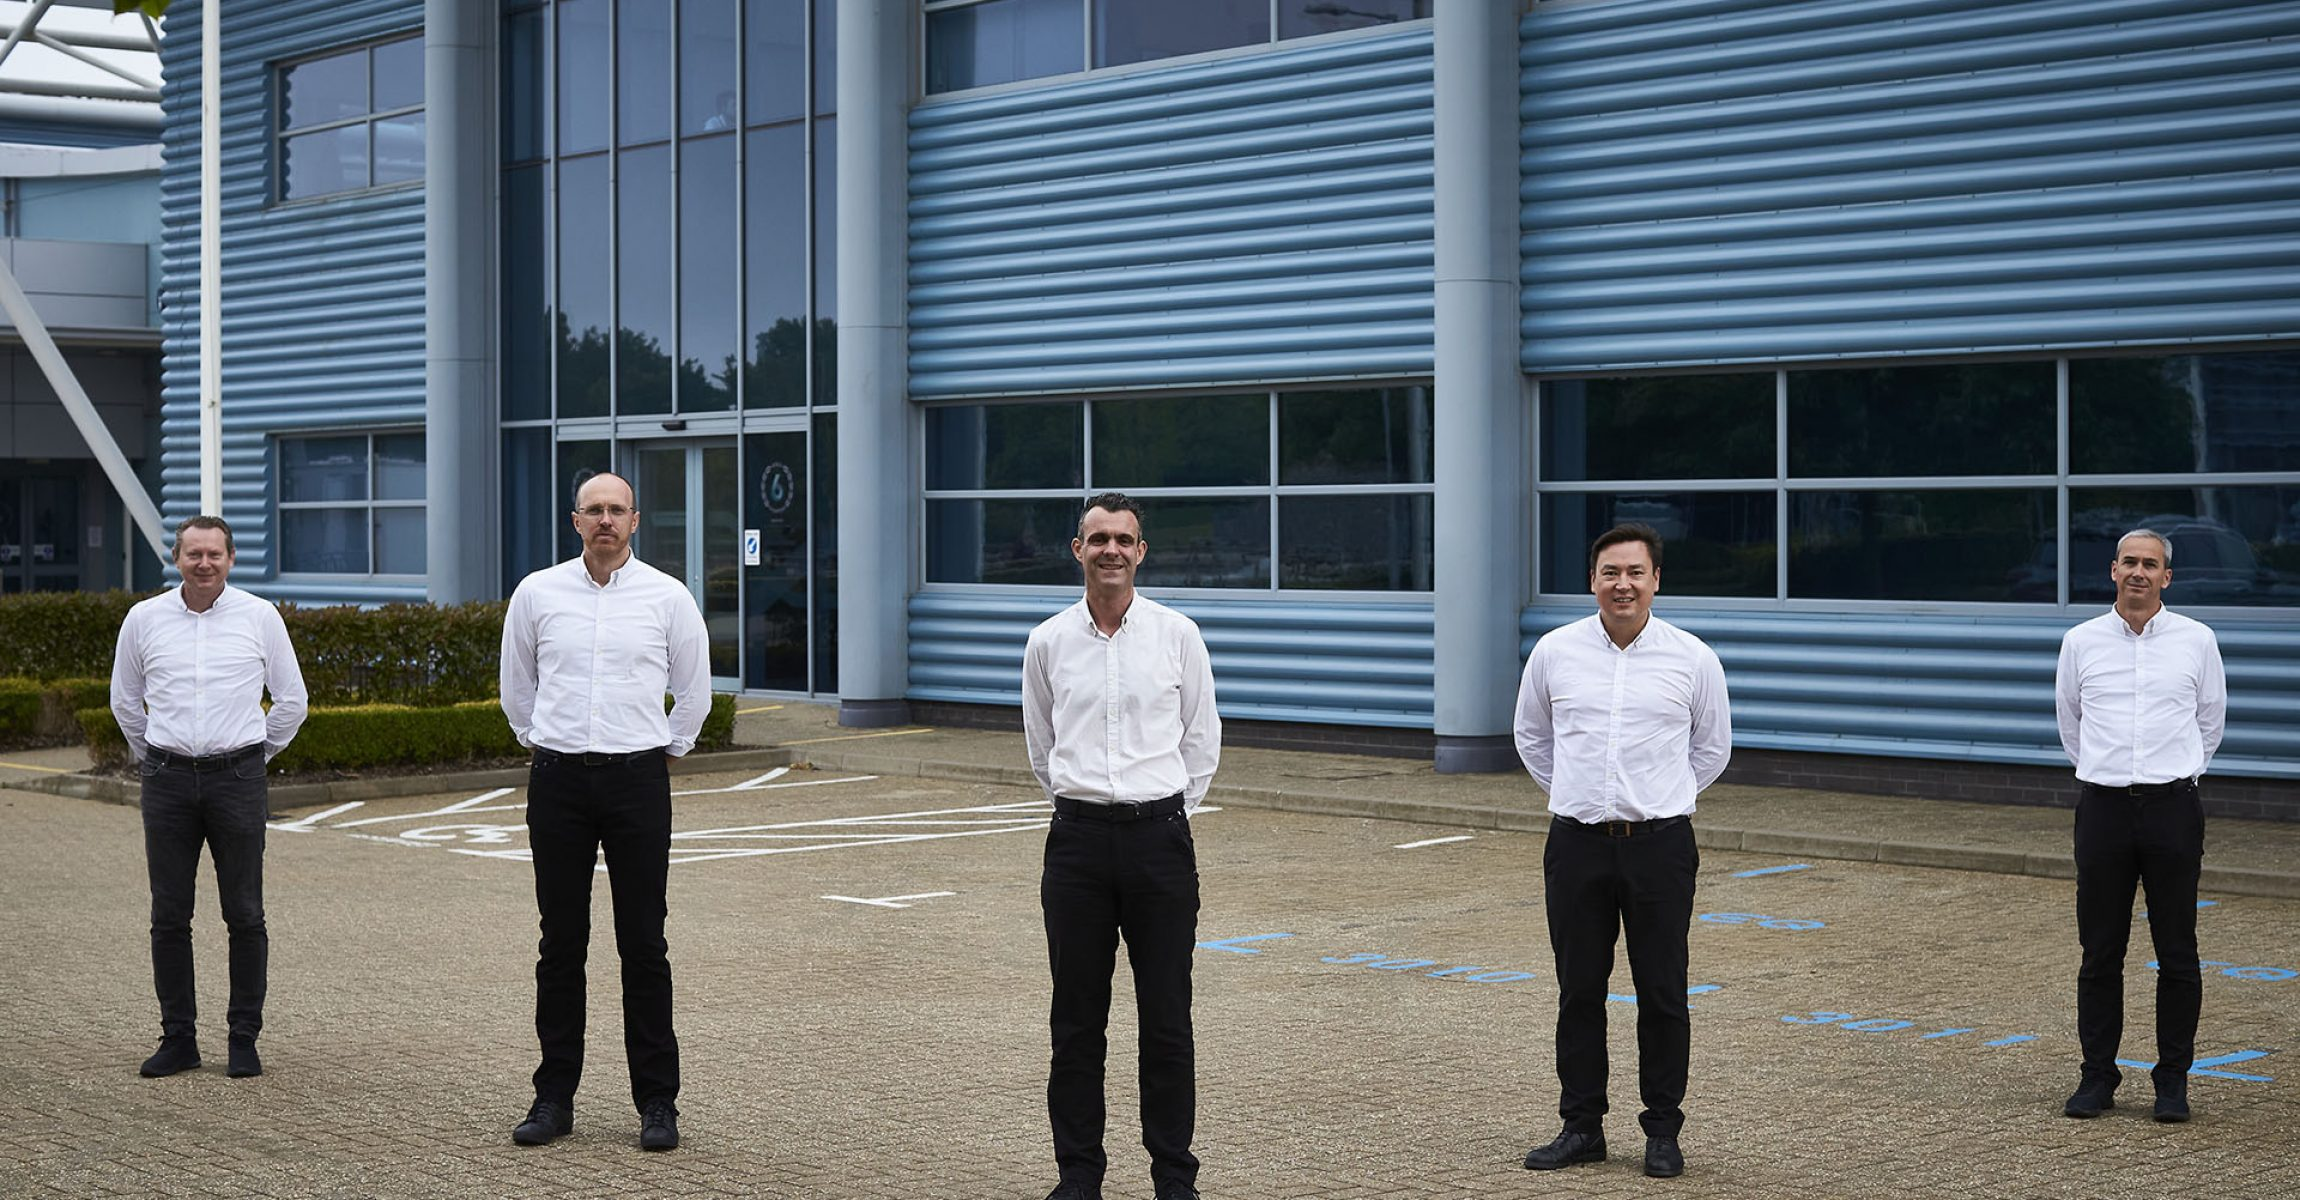 Revised senior management structure at Mercedes-AMG High Performance Powertrains (from left to right): Ronald Ballhaus (Finance and IT Director), Adam Allsopp (Project One Powertrain Director), Hywel Thomas (Managing Director), Richard Stevens (Operations Director), Pierre Godof (Formula E Powertrain Chief Engineer)